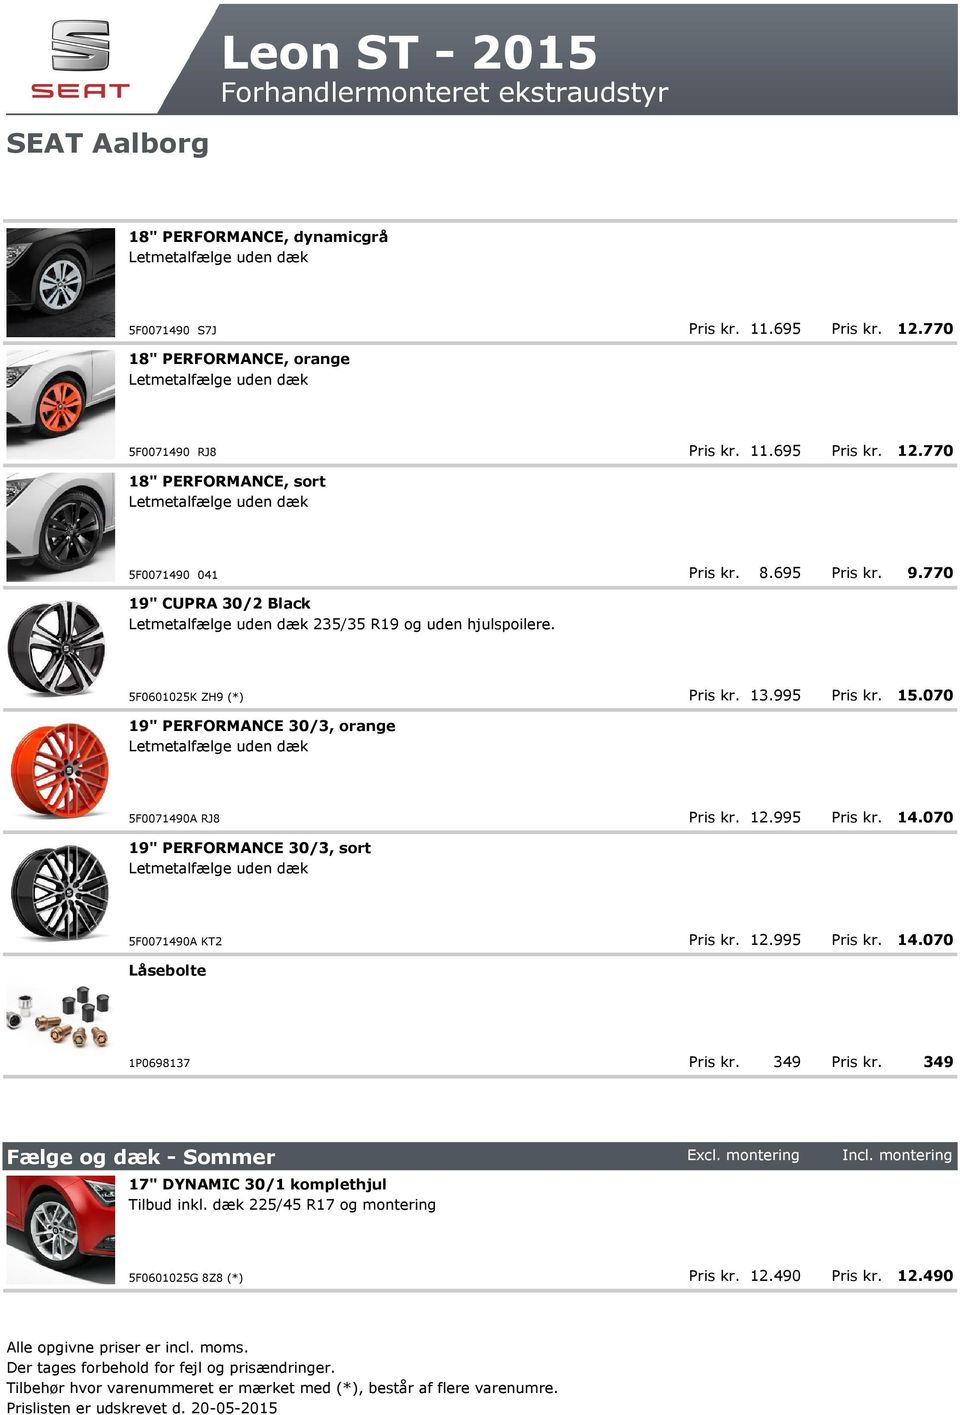 "070 349 18"" PERFORMANCE, orange 5F0071490 RJ8 18"" PERFORMANCE, sort 5F0071490 041 19"" CUPRA 30/2 Black 235/35 R19 og uden"